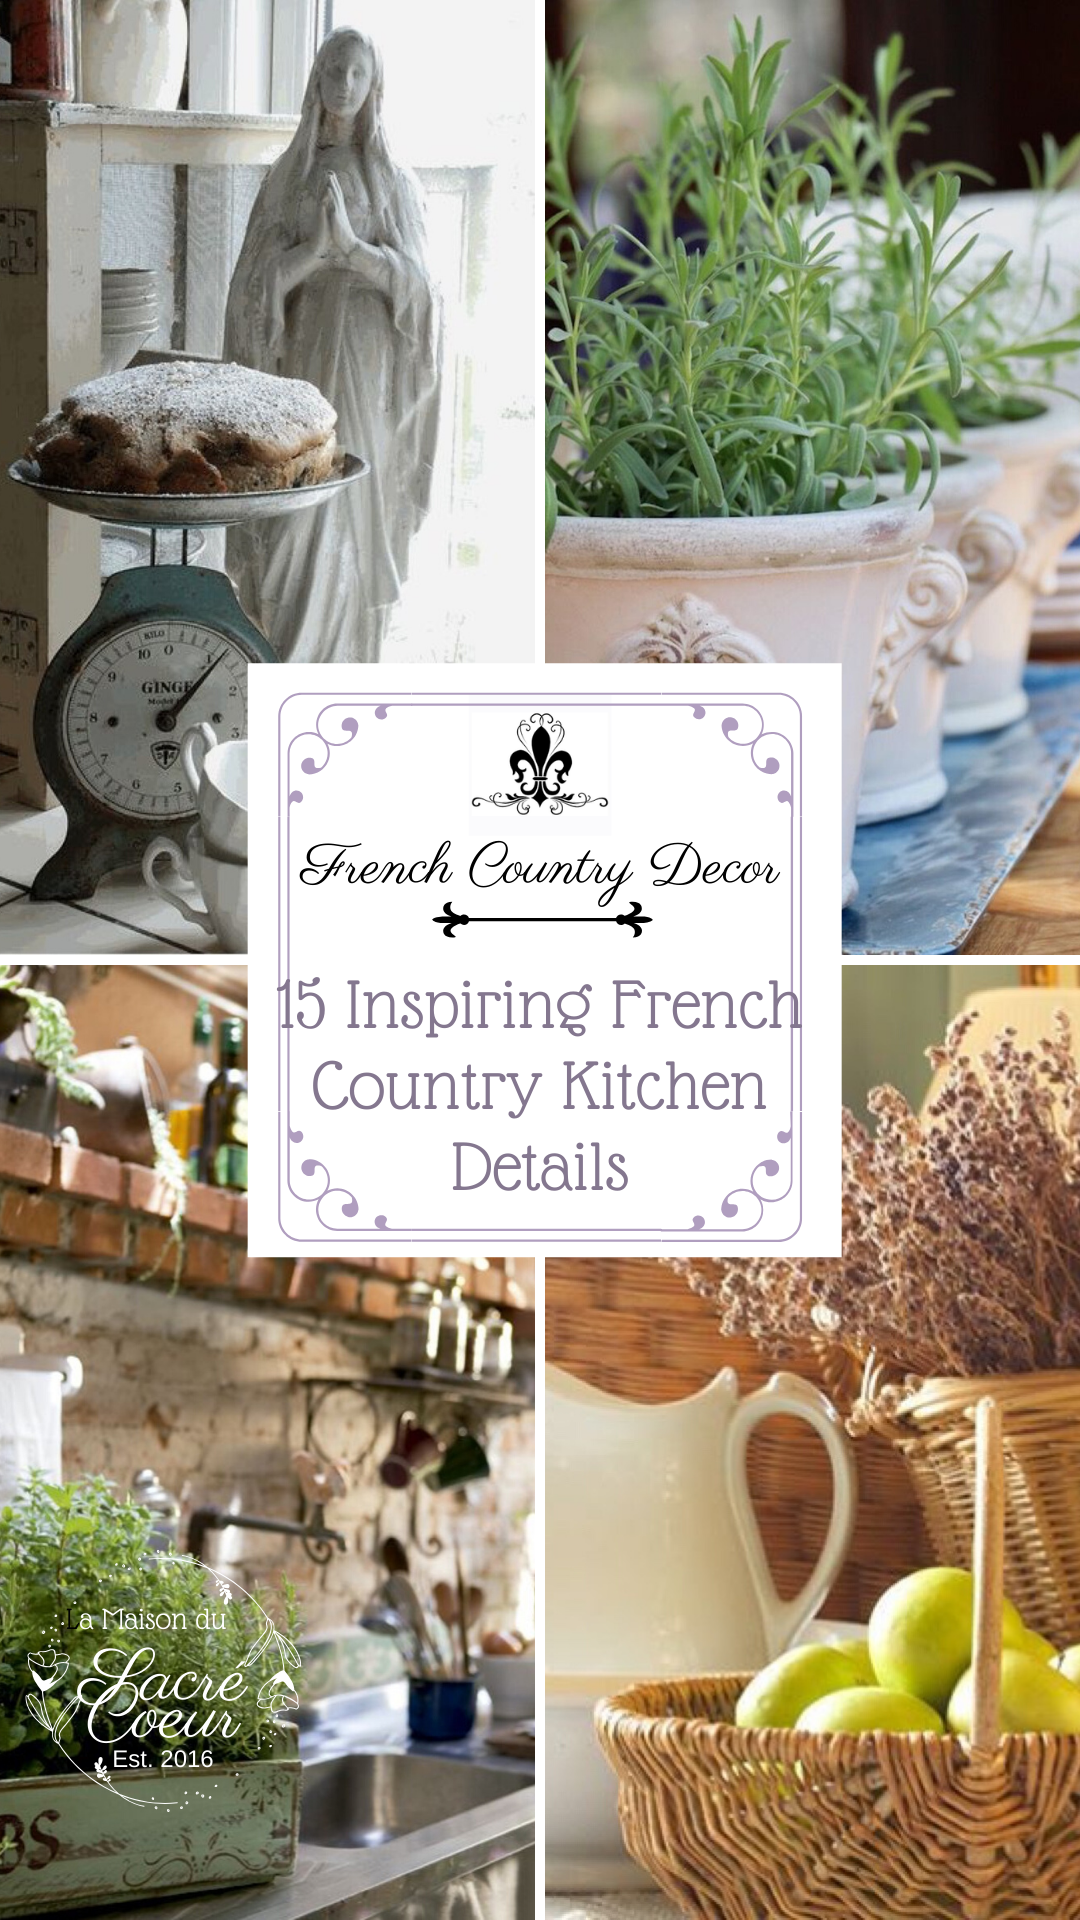 15 Inspiring French Country Kitchen Details